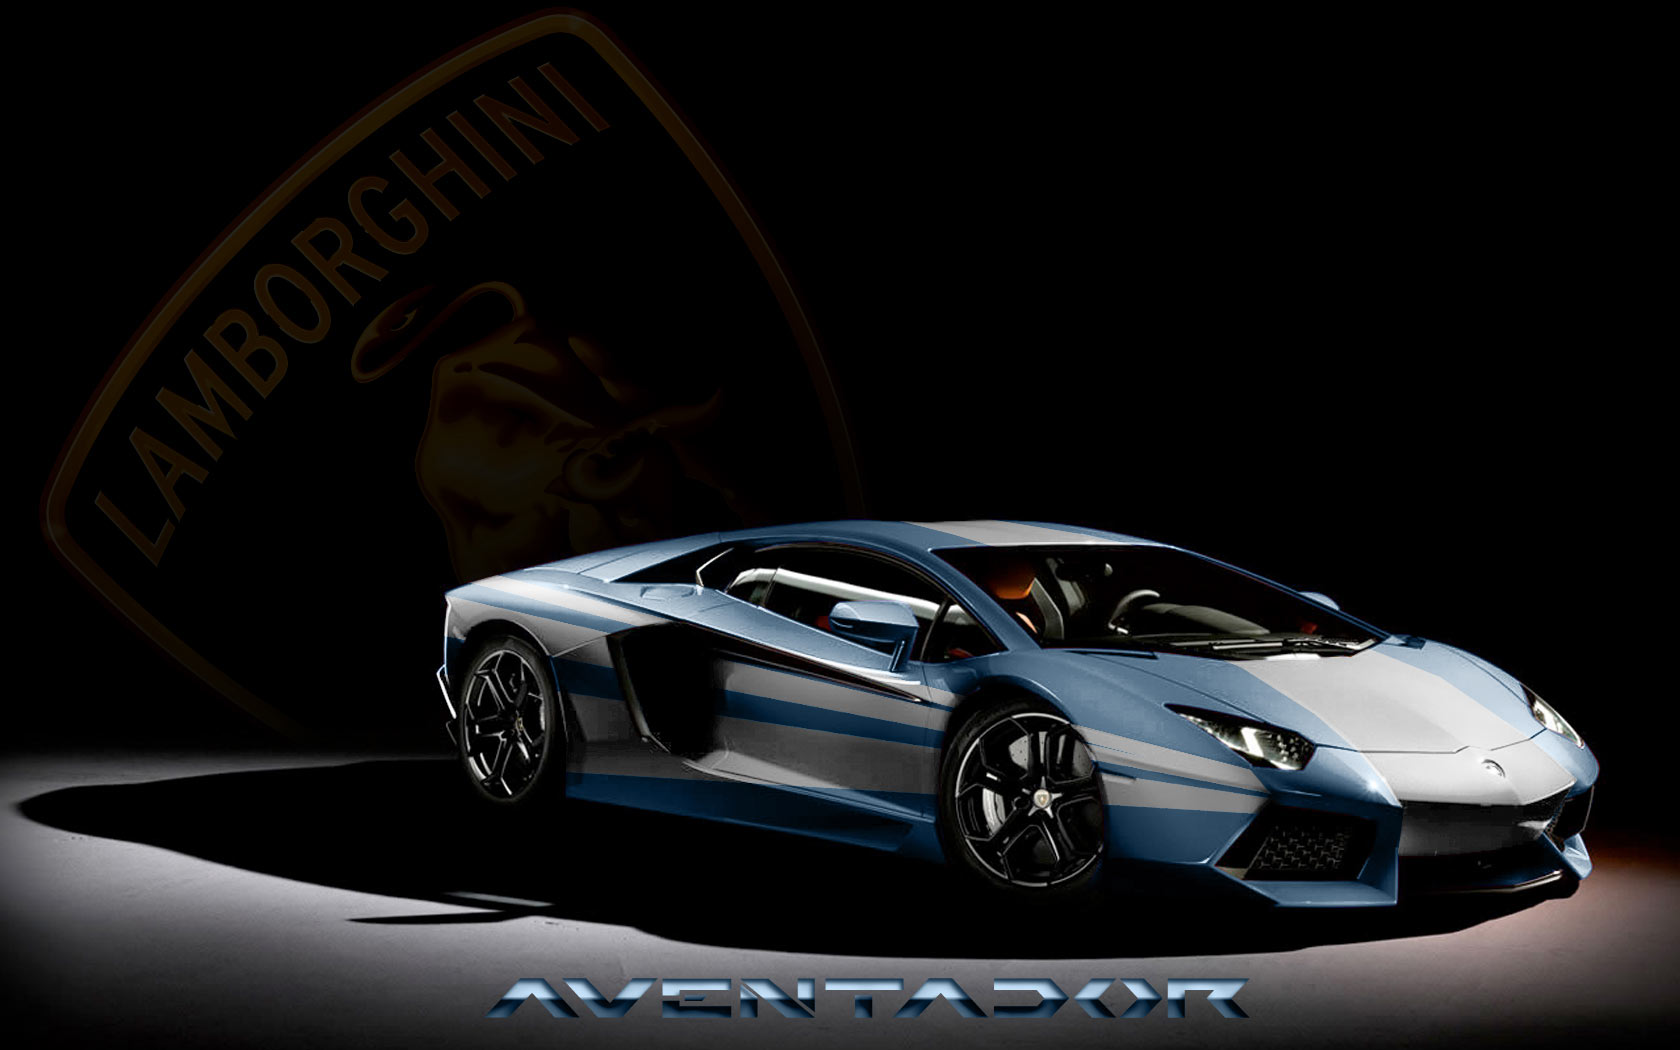 lamborghini aventador wallpaper hd black. wallpapers lamborghini aventador lp hd widescreen 19201080 engine wallpaper black